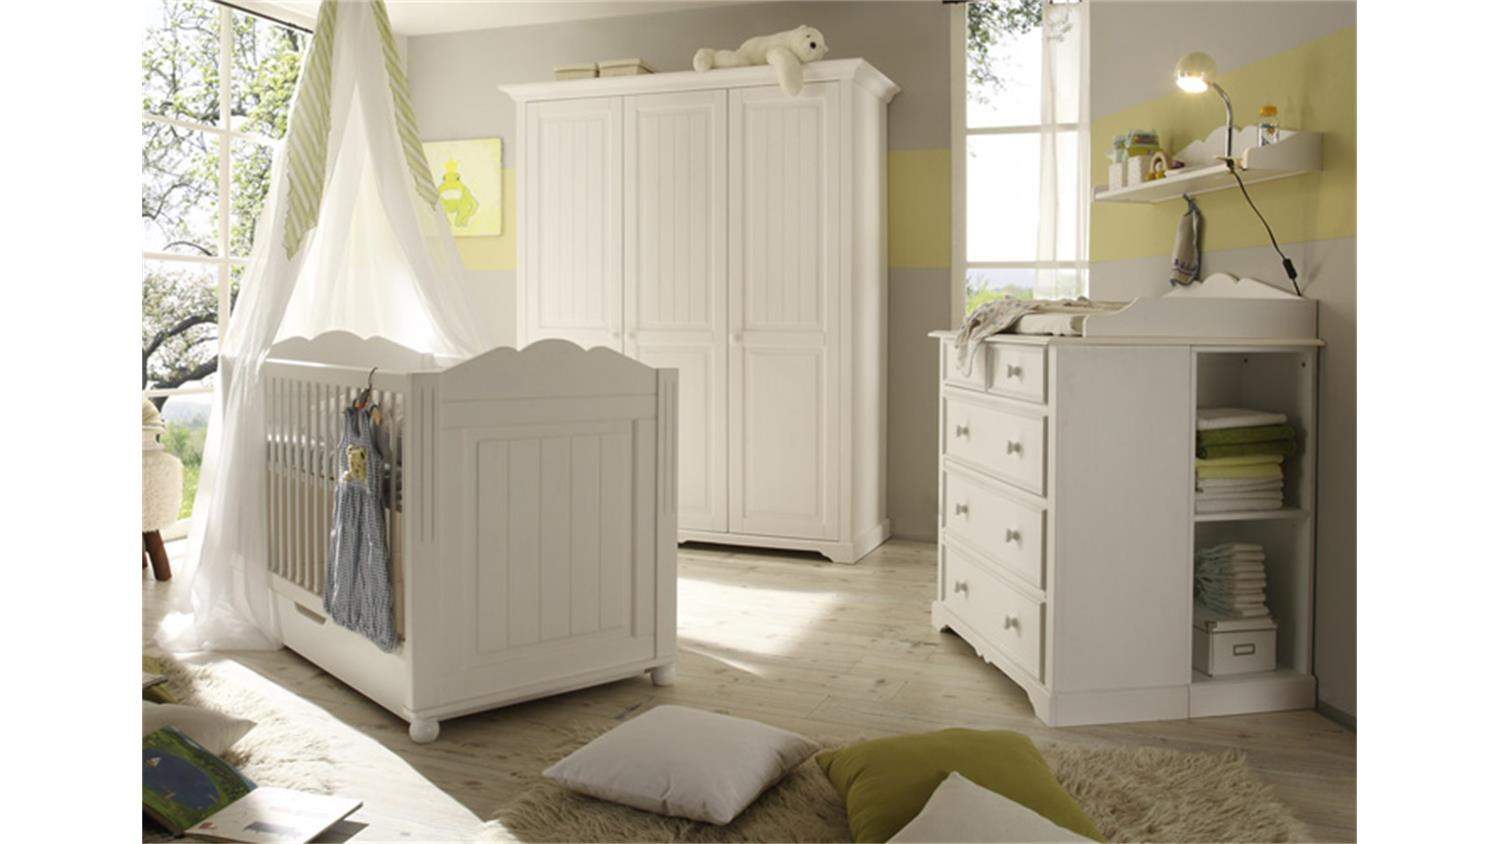 kinderzimmer landhaus landhaus babyzimmer kinderzimmer. Black Bedroom Furniture Sets. Home Design Ideas